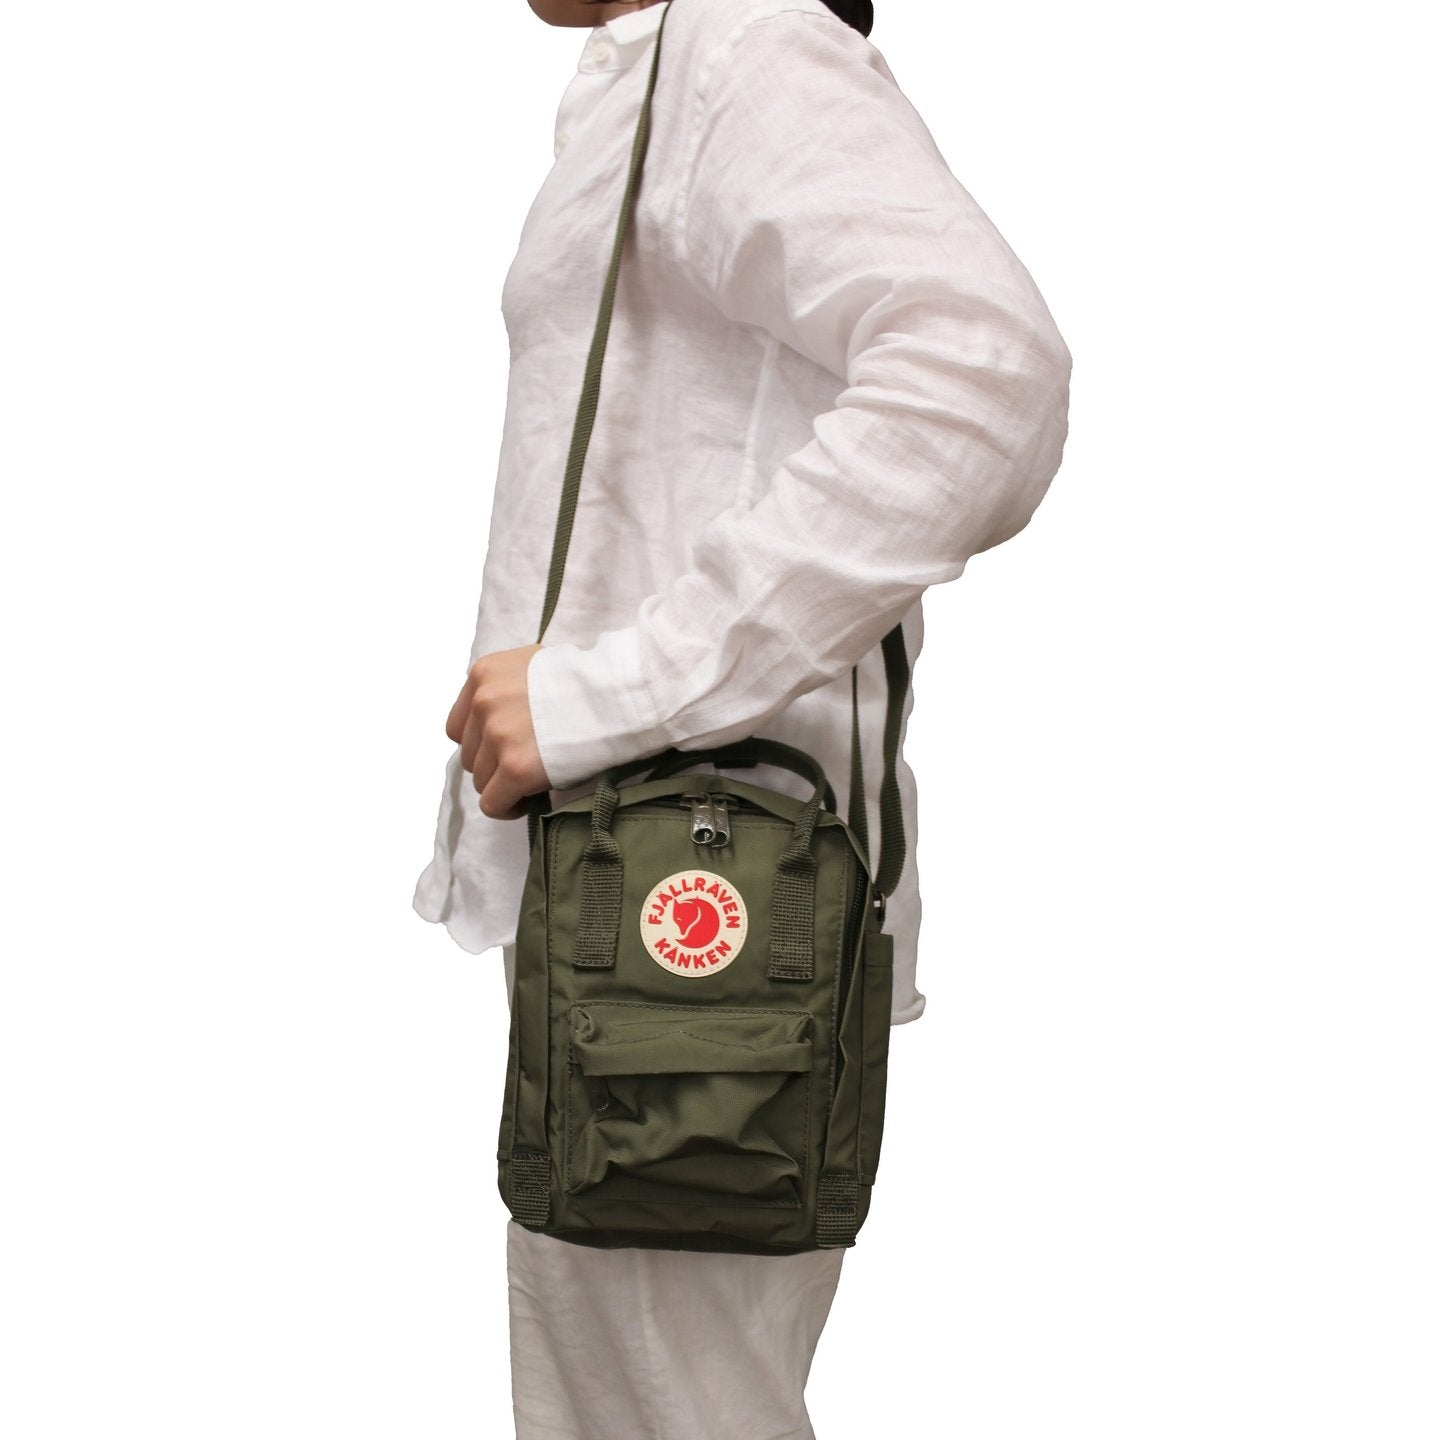 Fjallraven Kanken Sling - Find Your Feet Australia Hobart Launceston Tasmania